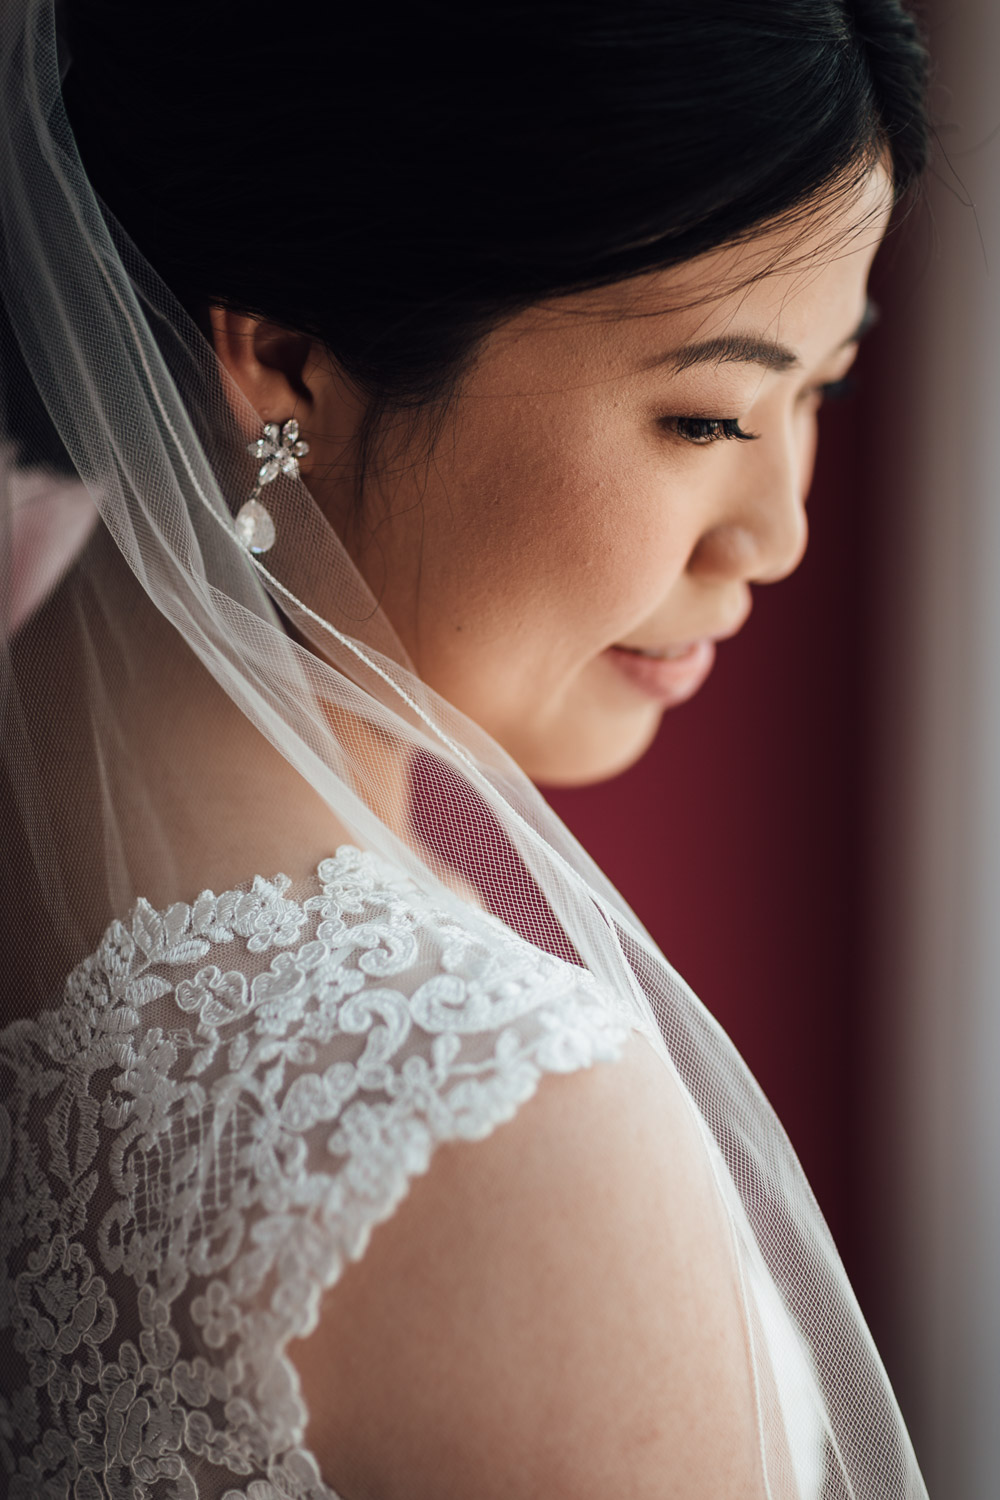 bride portrait getting ready in opus hotel in yaletown vancouver bc wedding photography